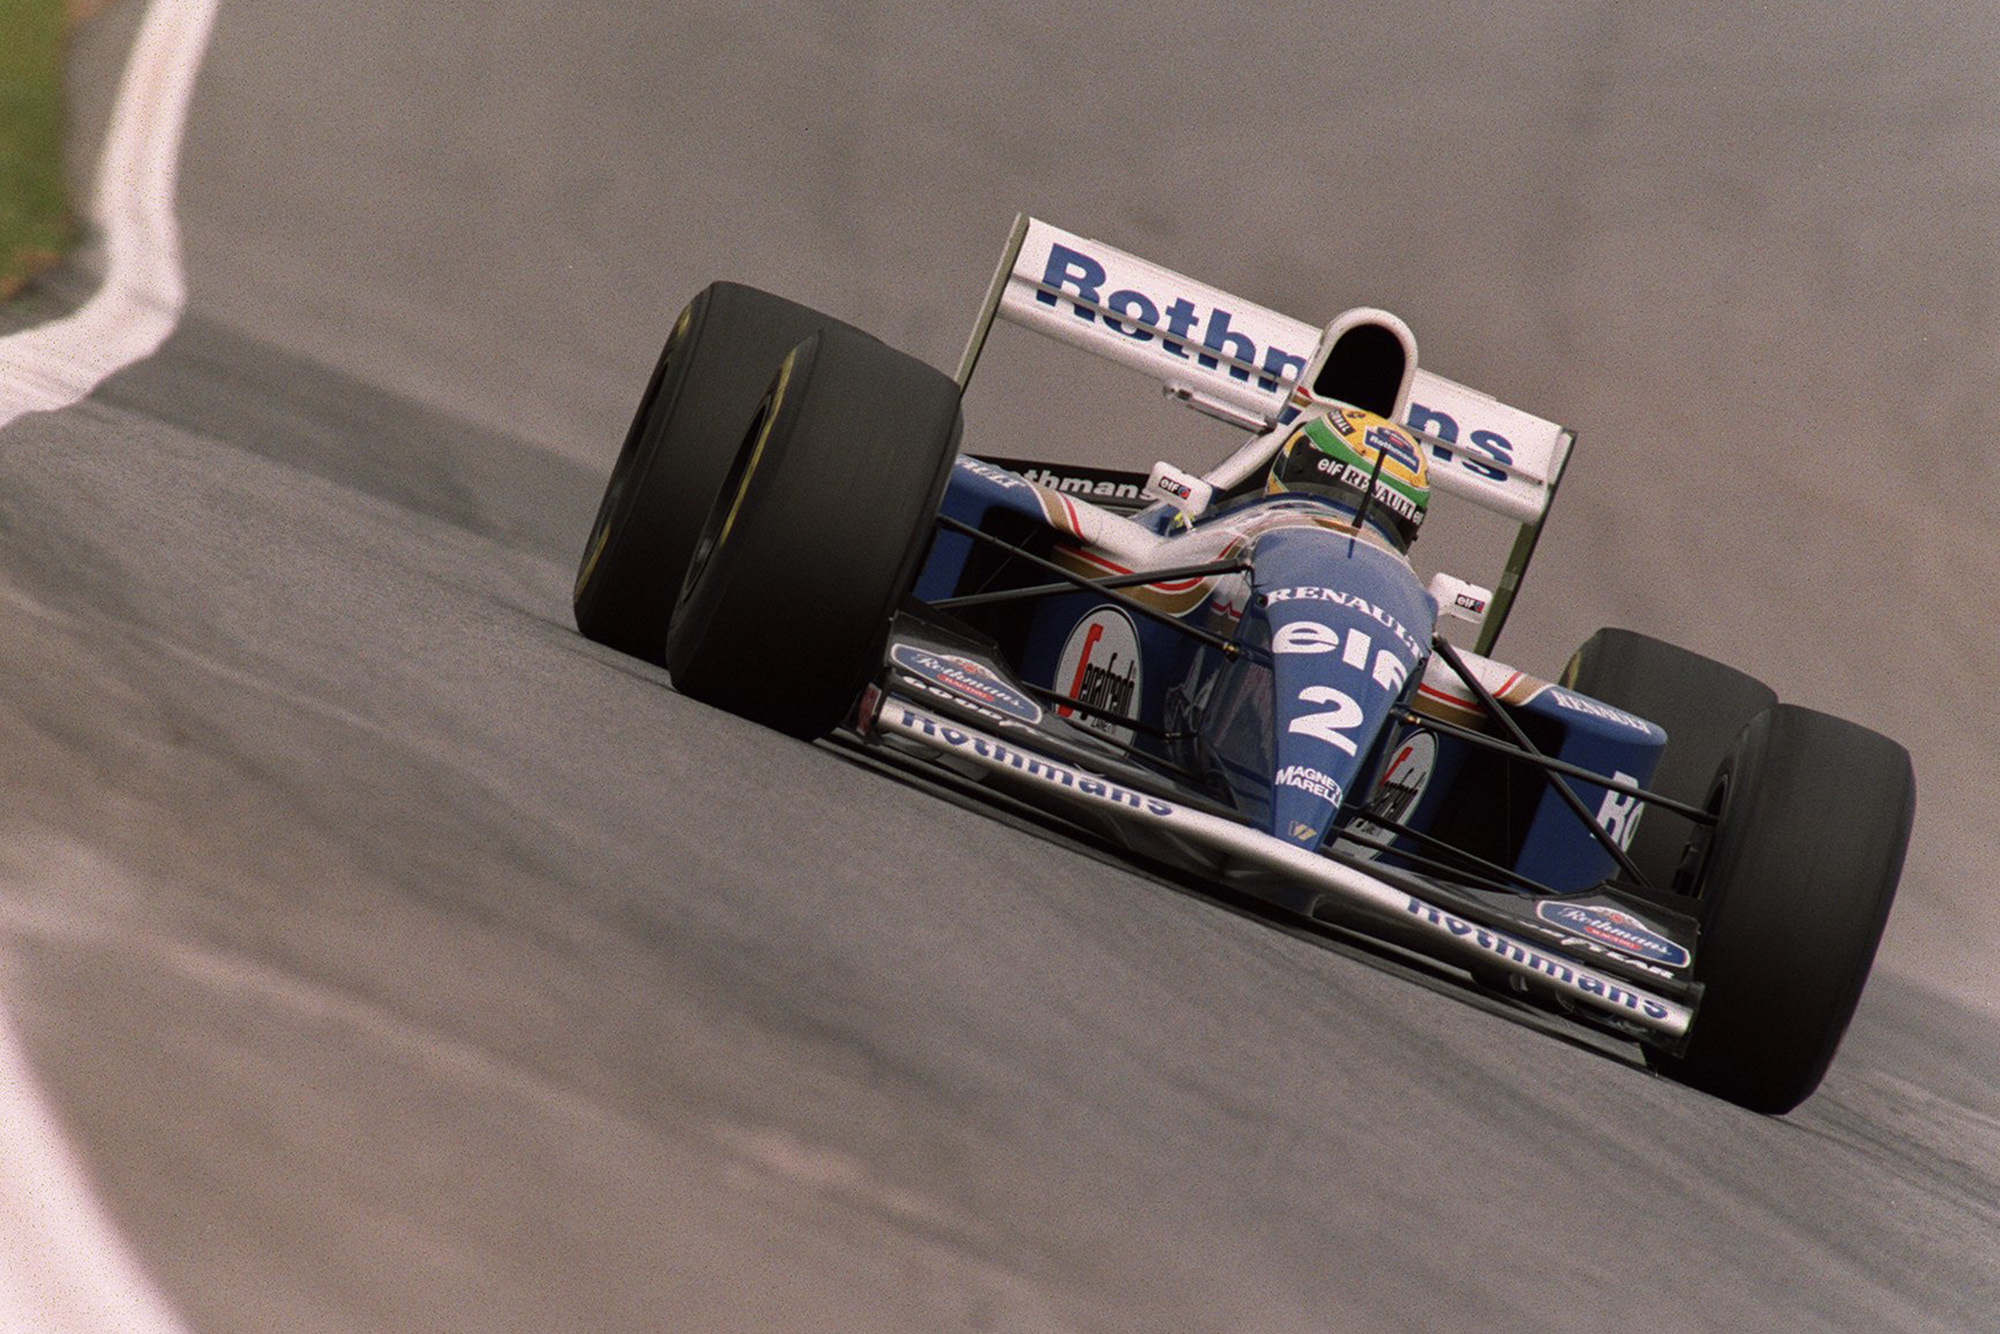 Ayrton Senna in a Williams renault at the 1994 Brazilian Grand Prix